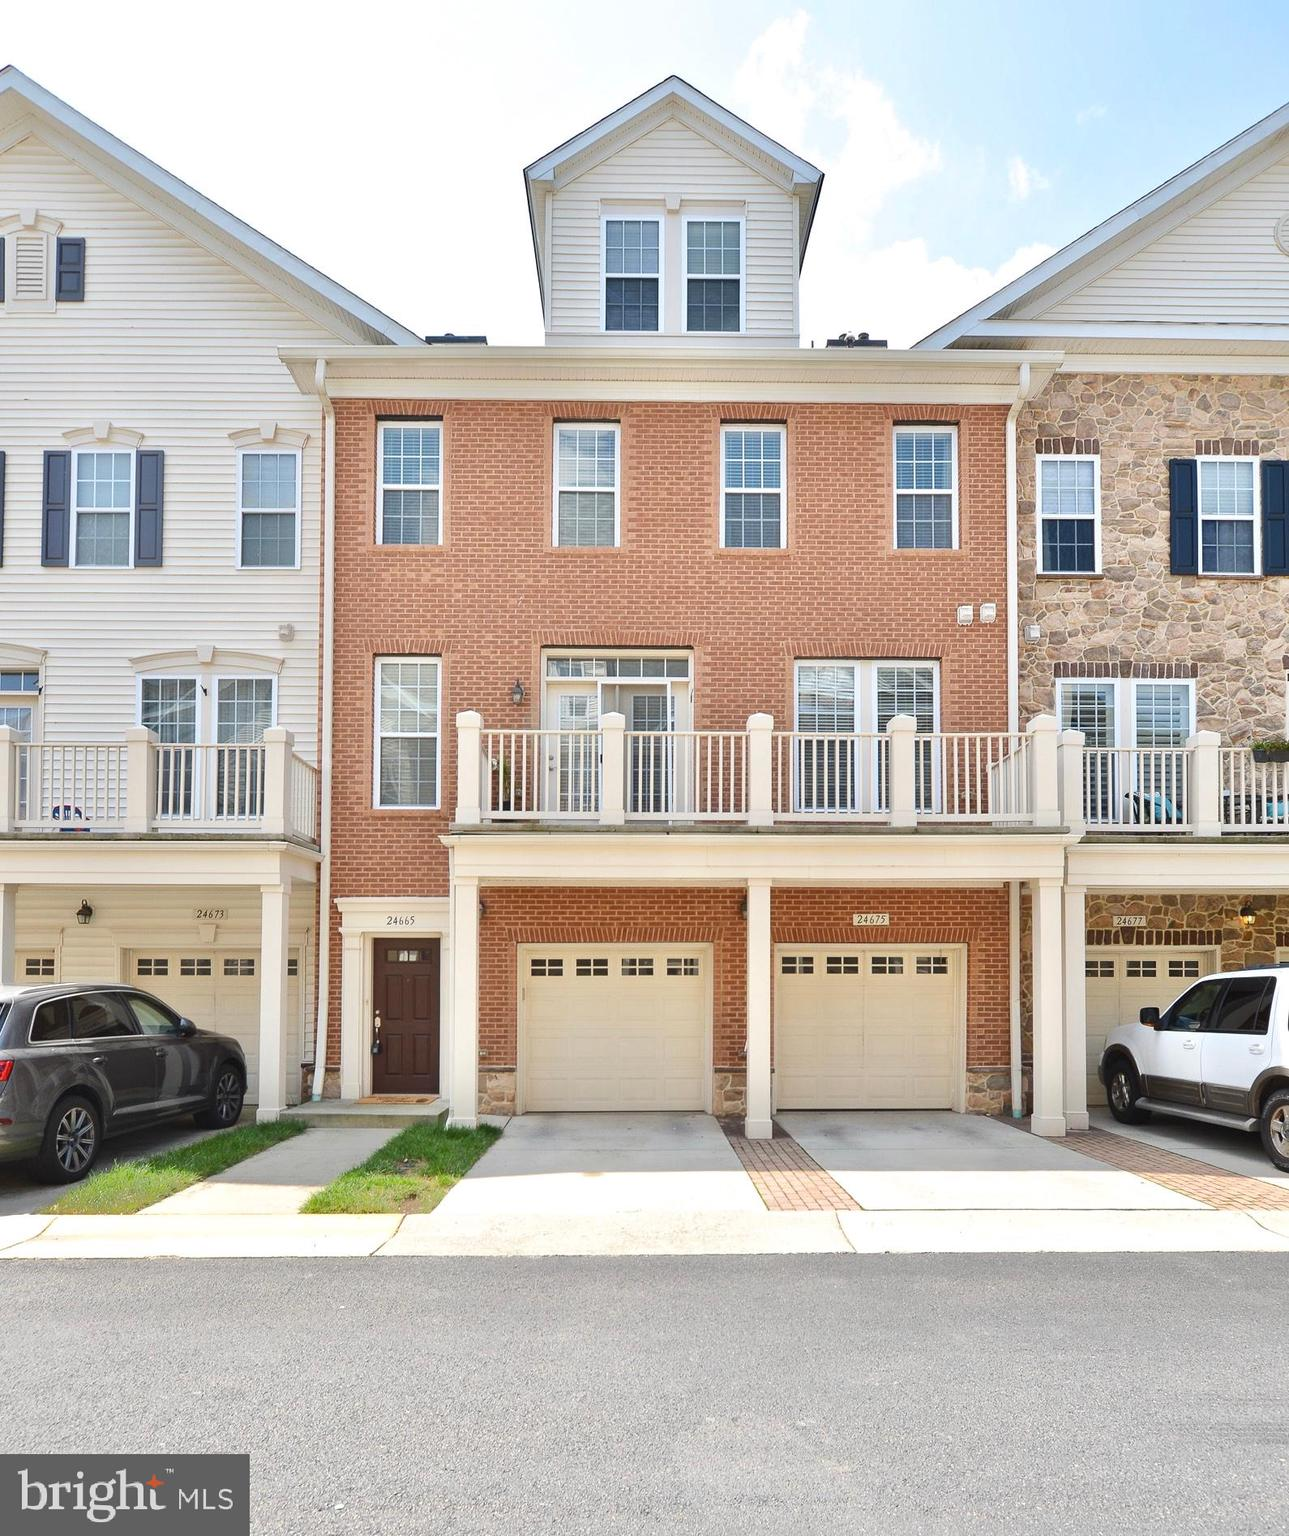 *****WELCOME to a beautiful 3 bedroom, 3.5 bath condo in popular Stone Ridge location*****This  bric